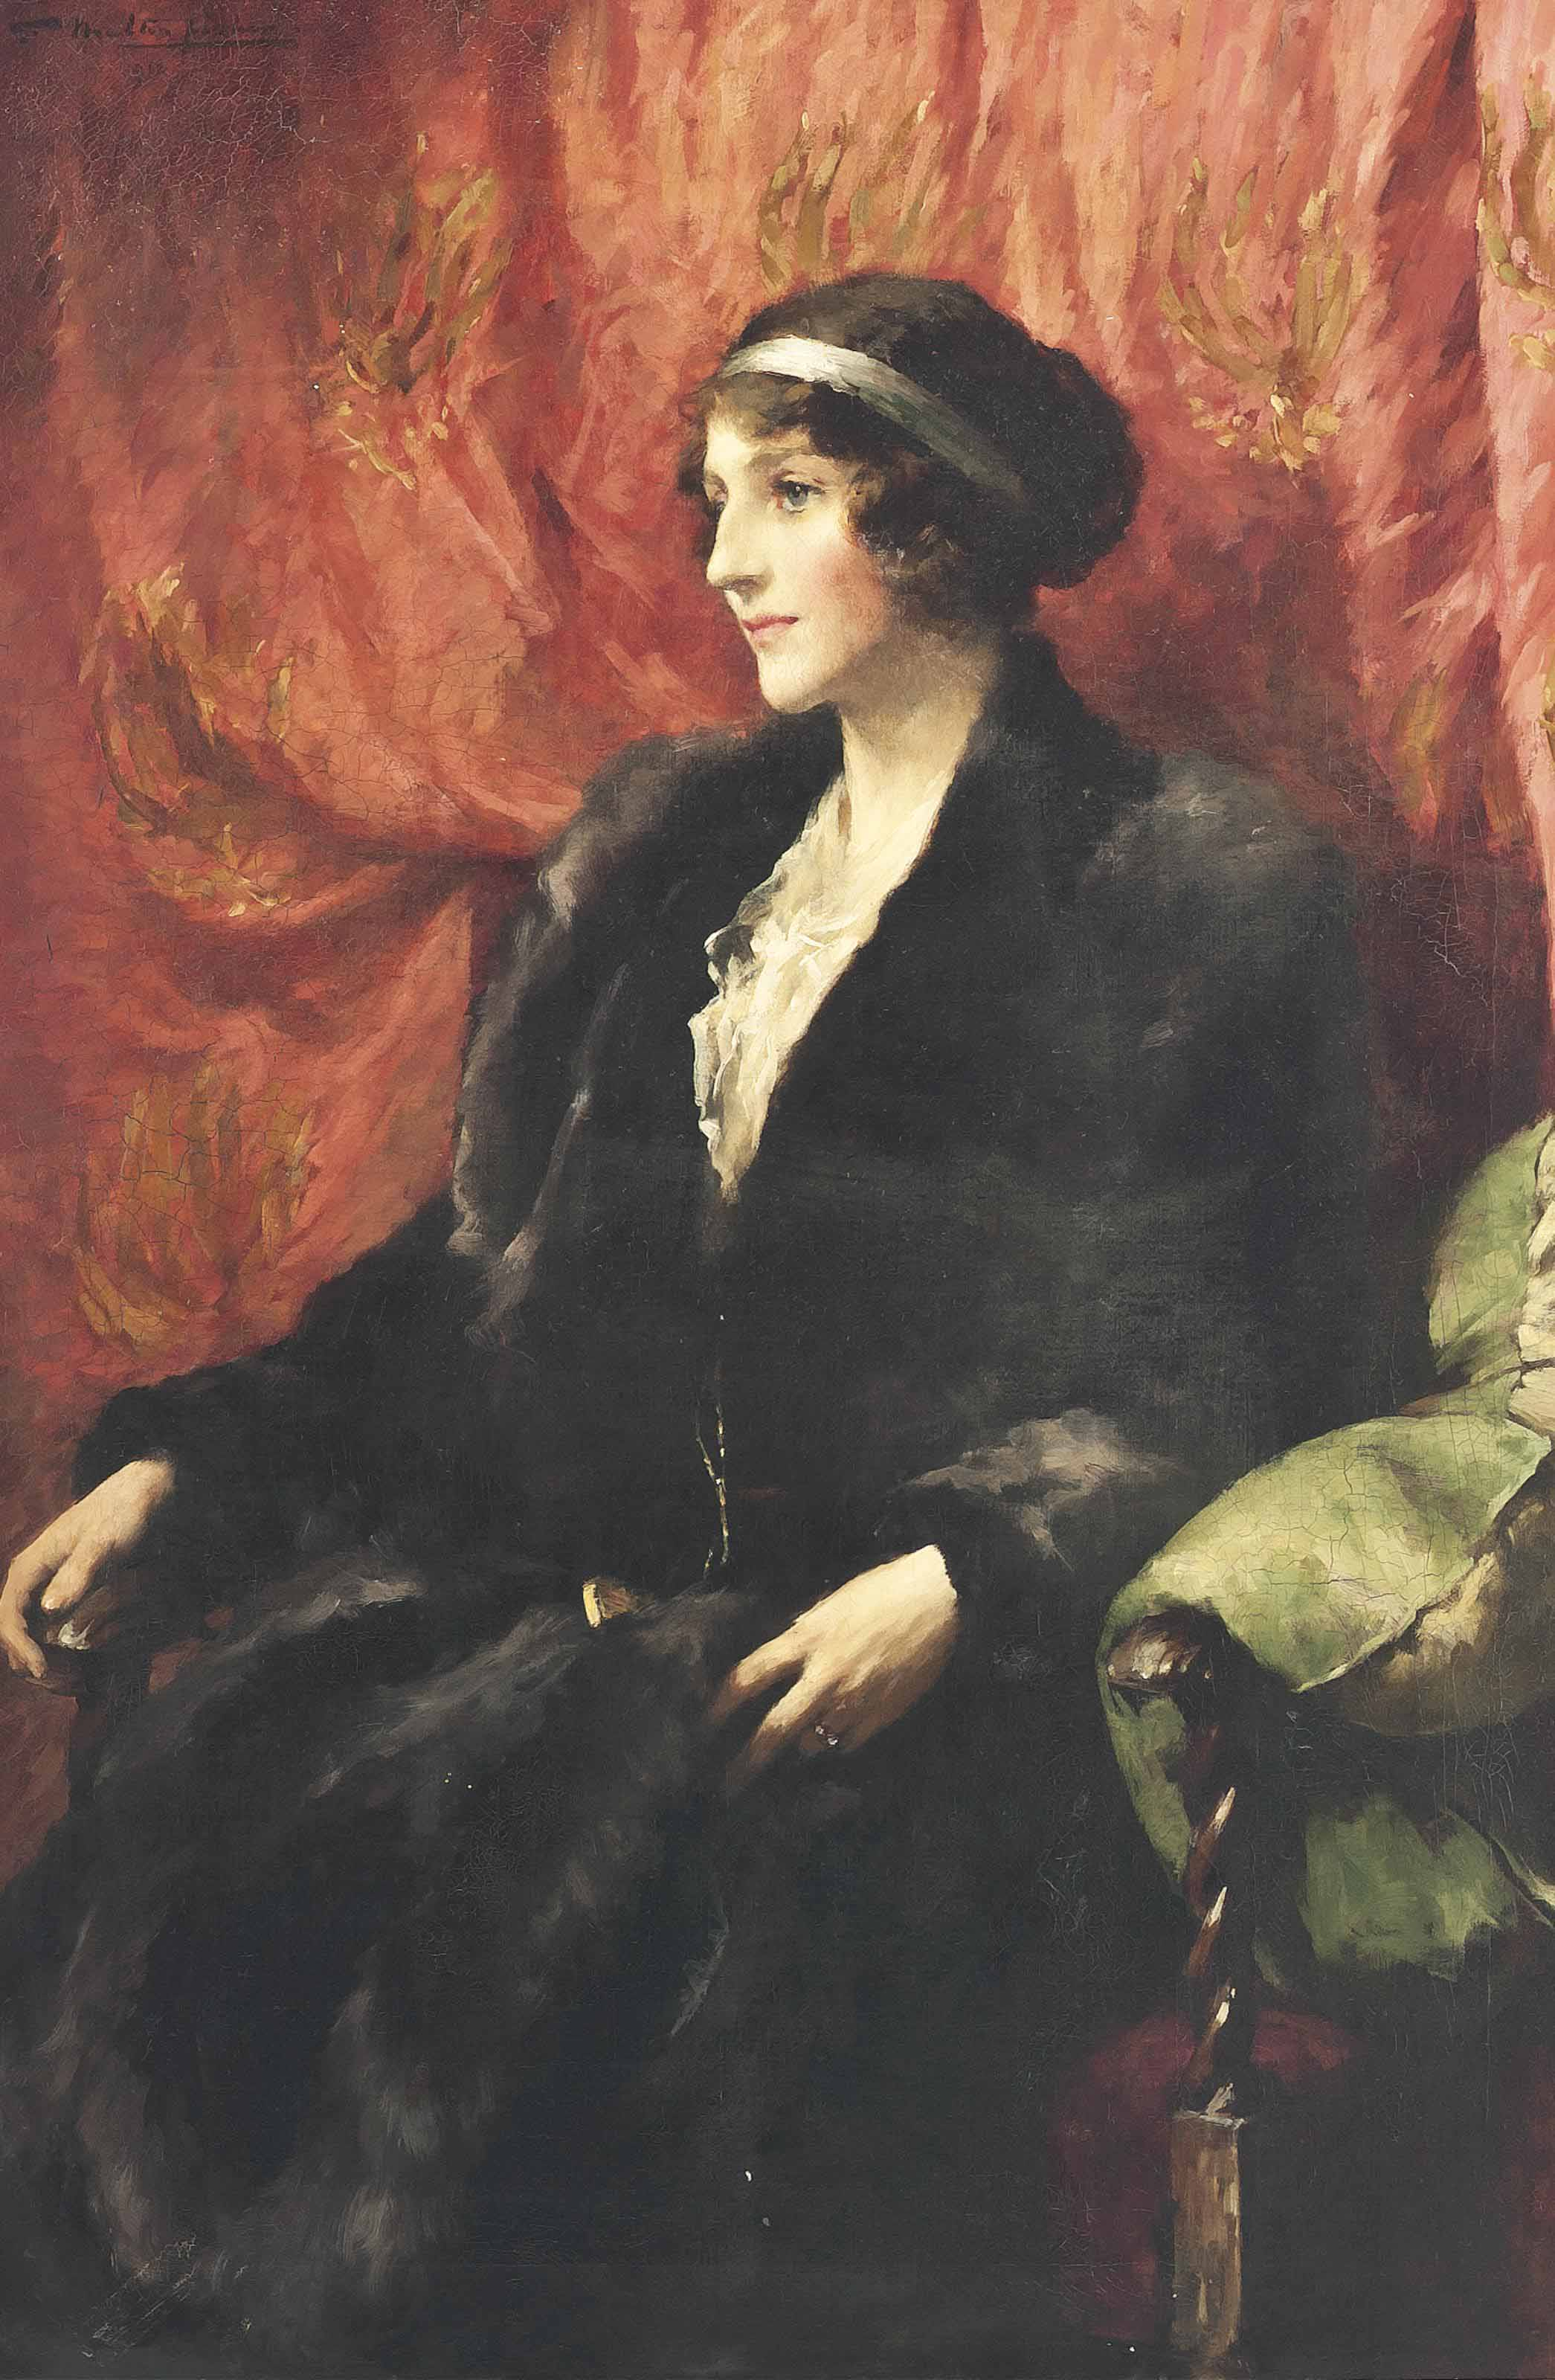 Portrait of a lady, three-quarter length, seated wearing a fur coat and a hair band